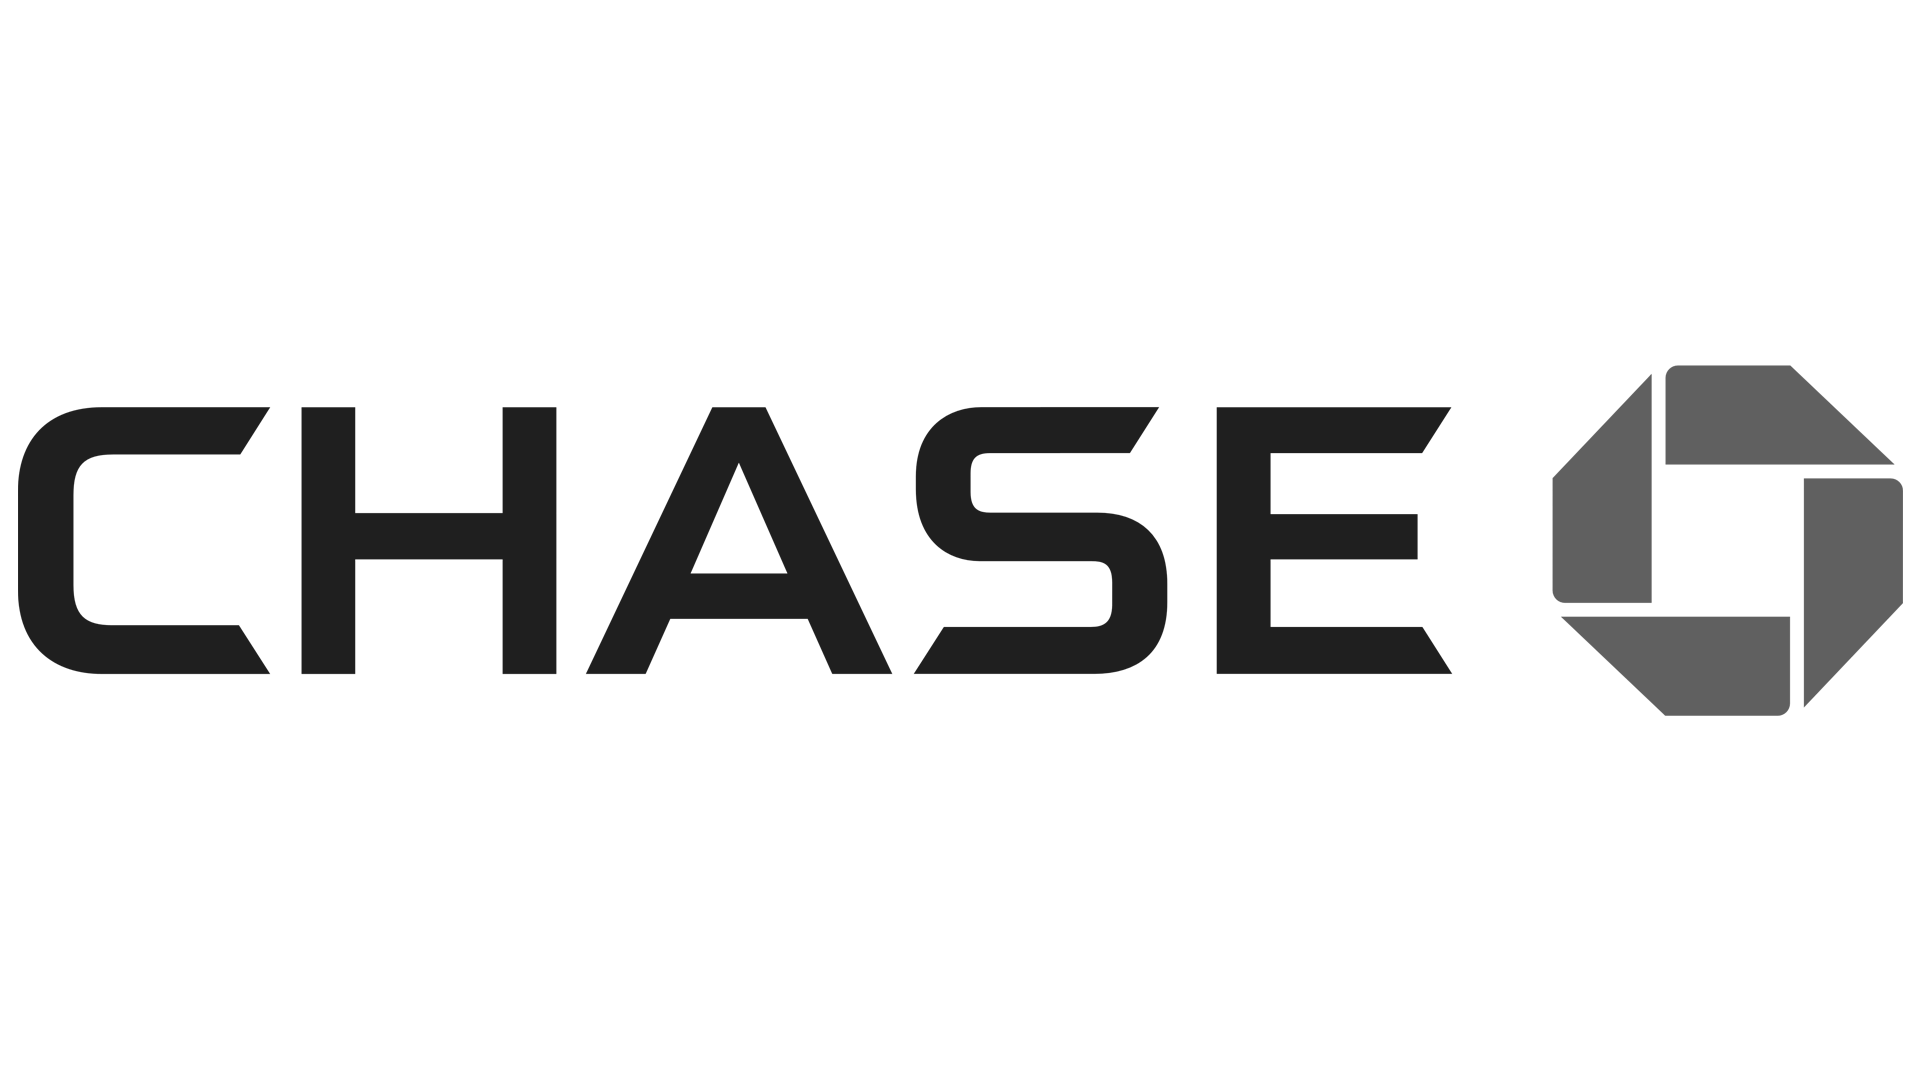 Chase Website Final.png